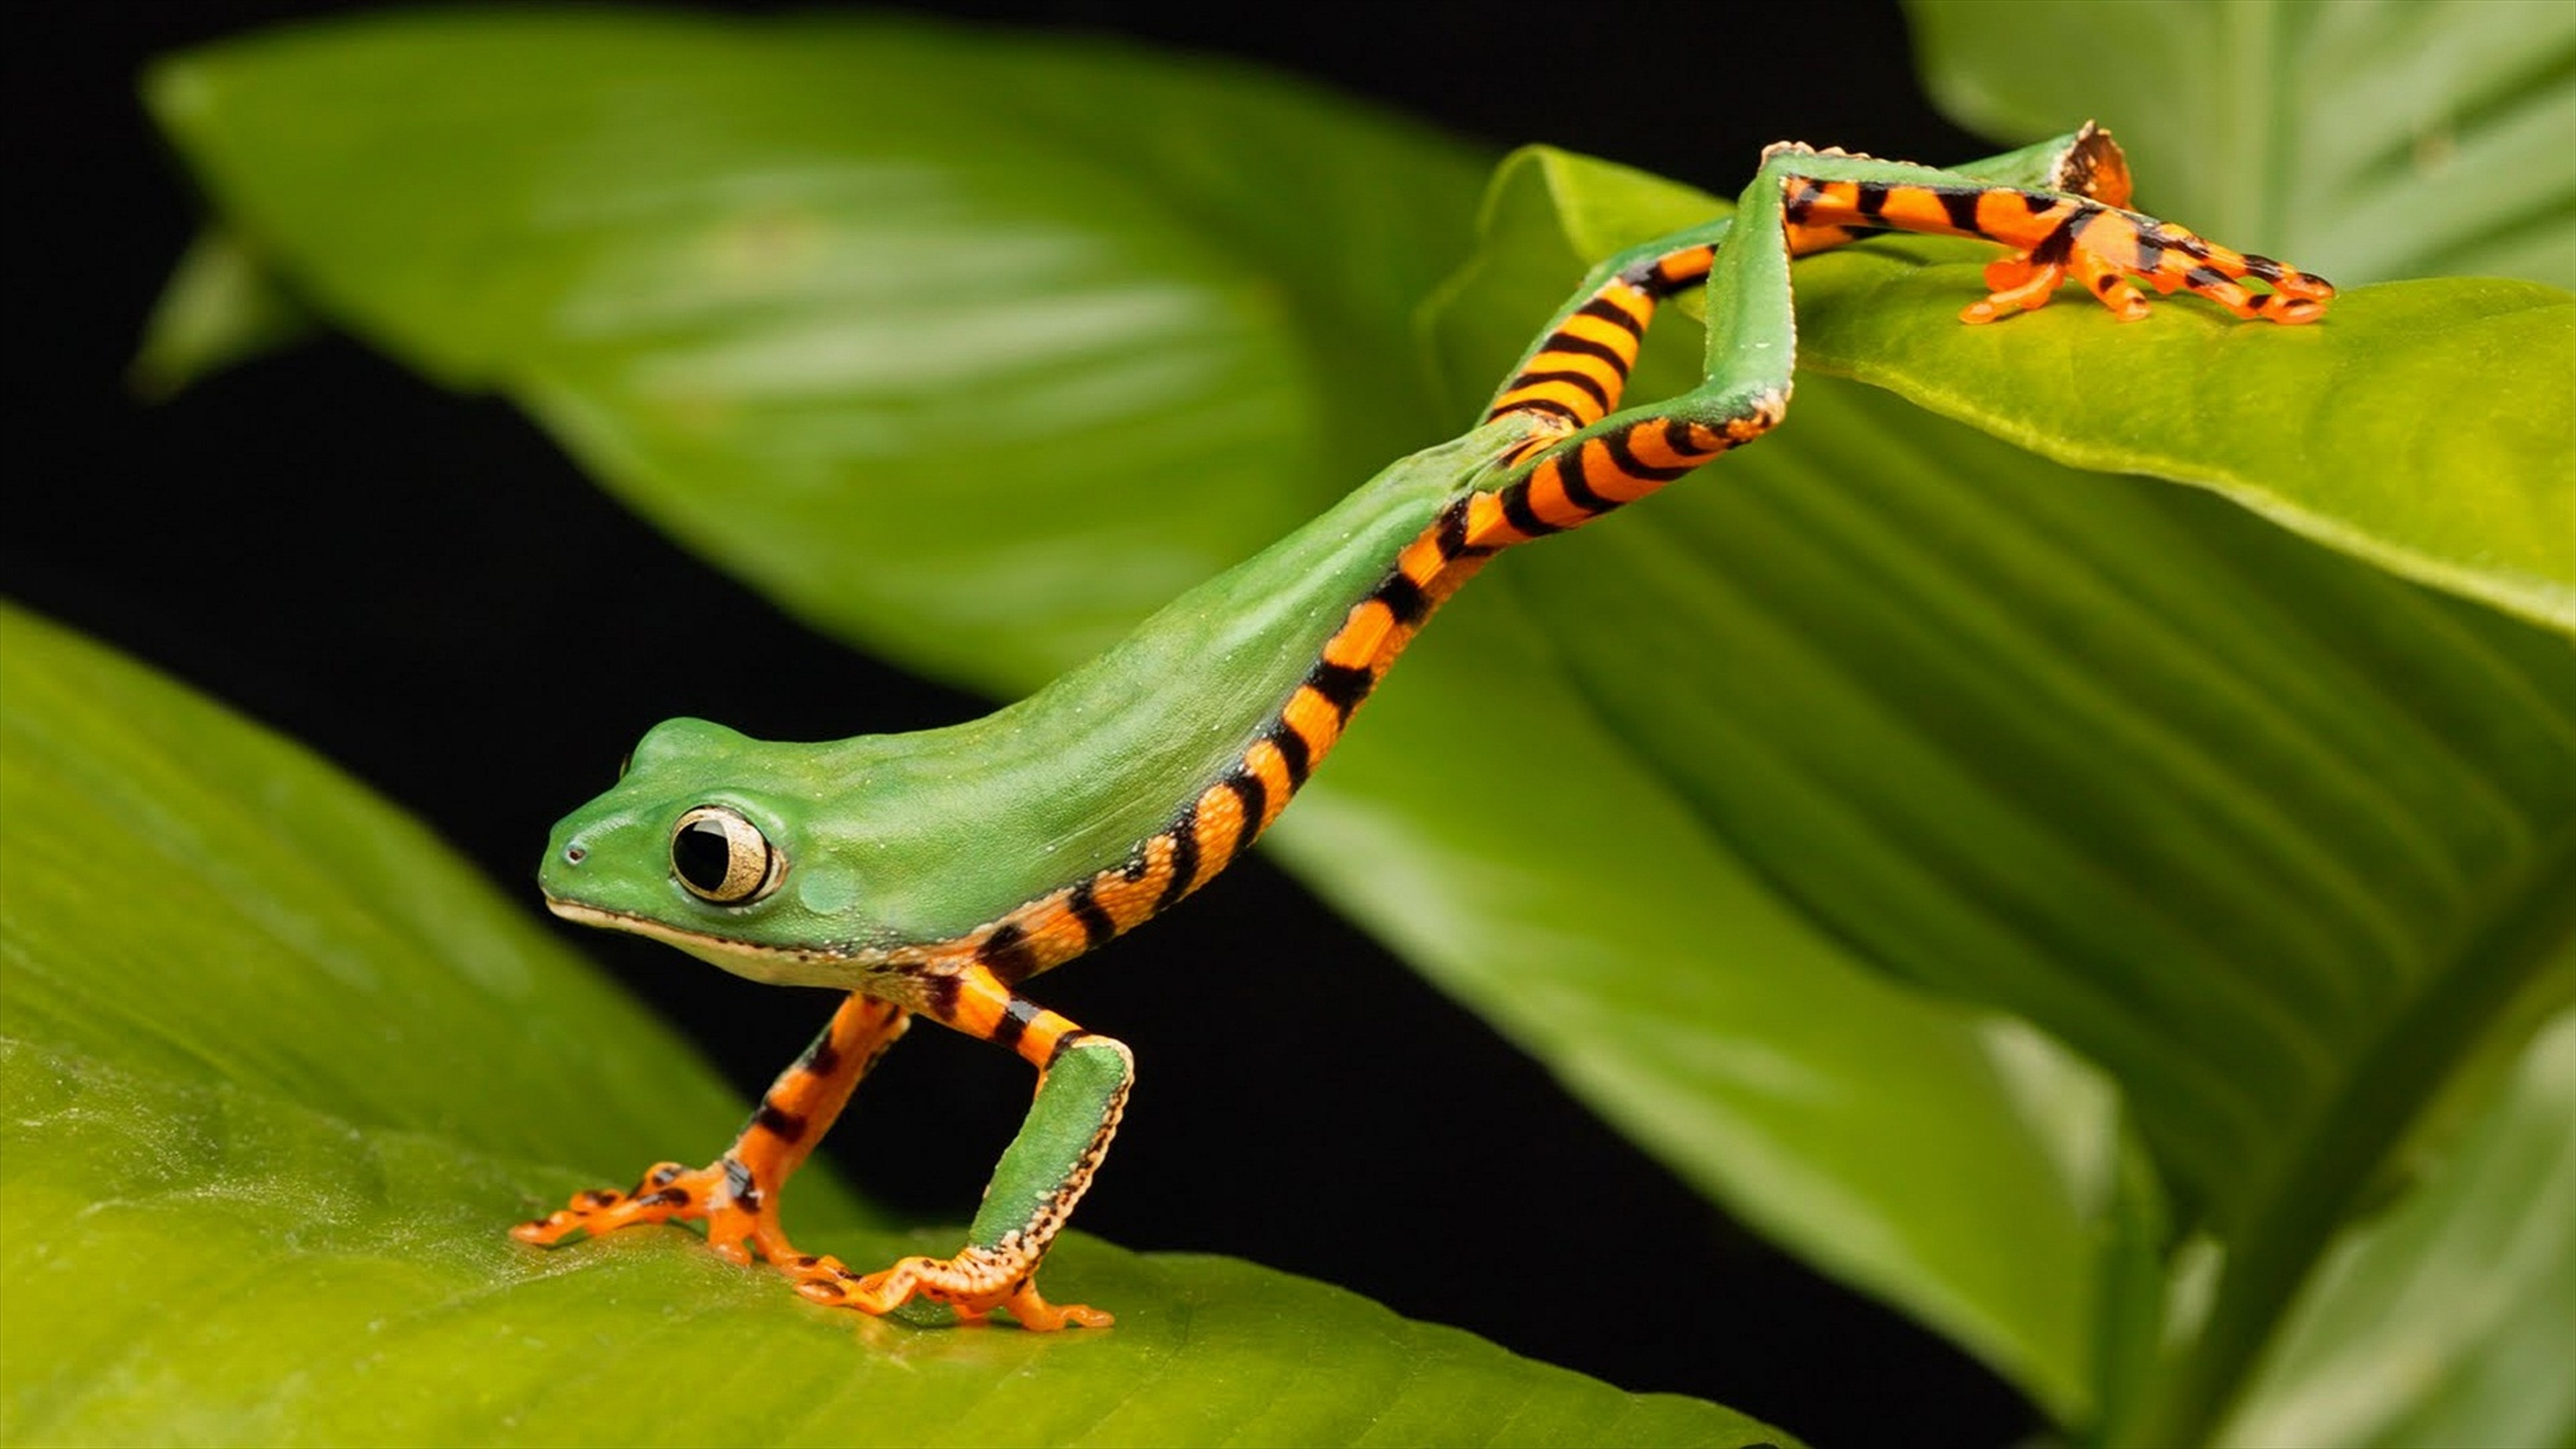 Res: 3840x2160, Tree Frogs images Tree Frog HD wallpaper and background photos